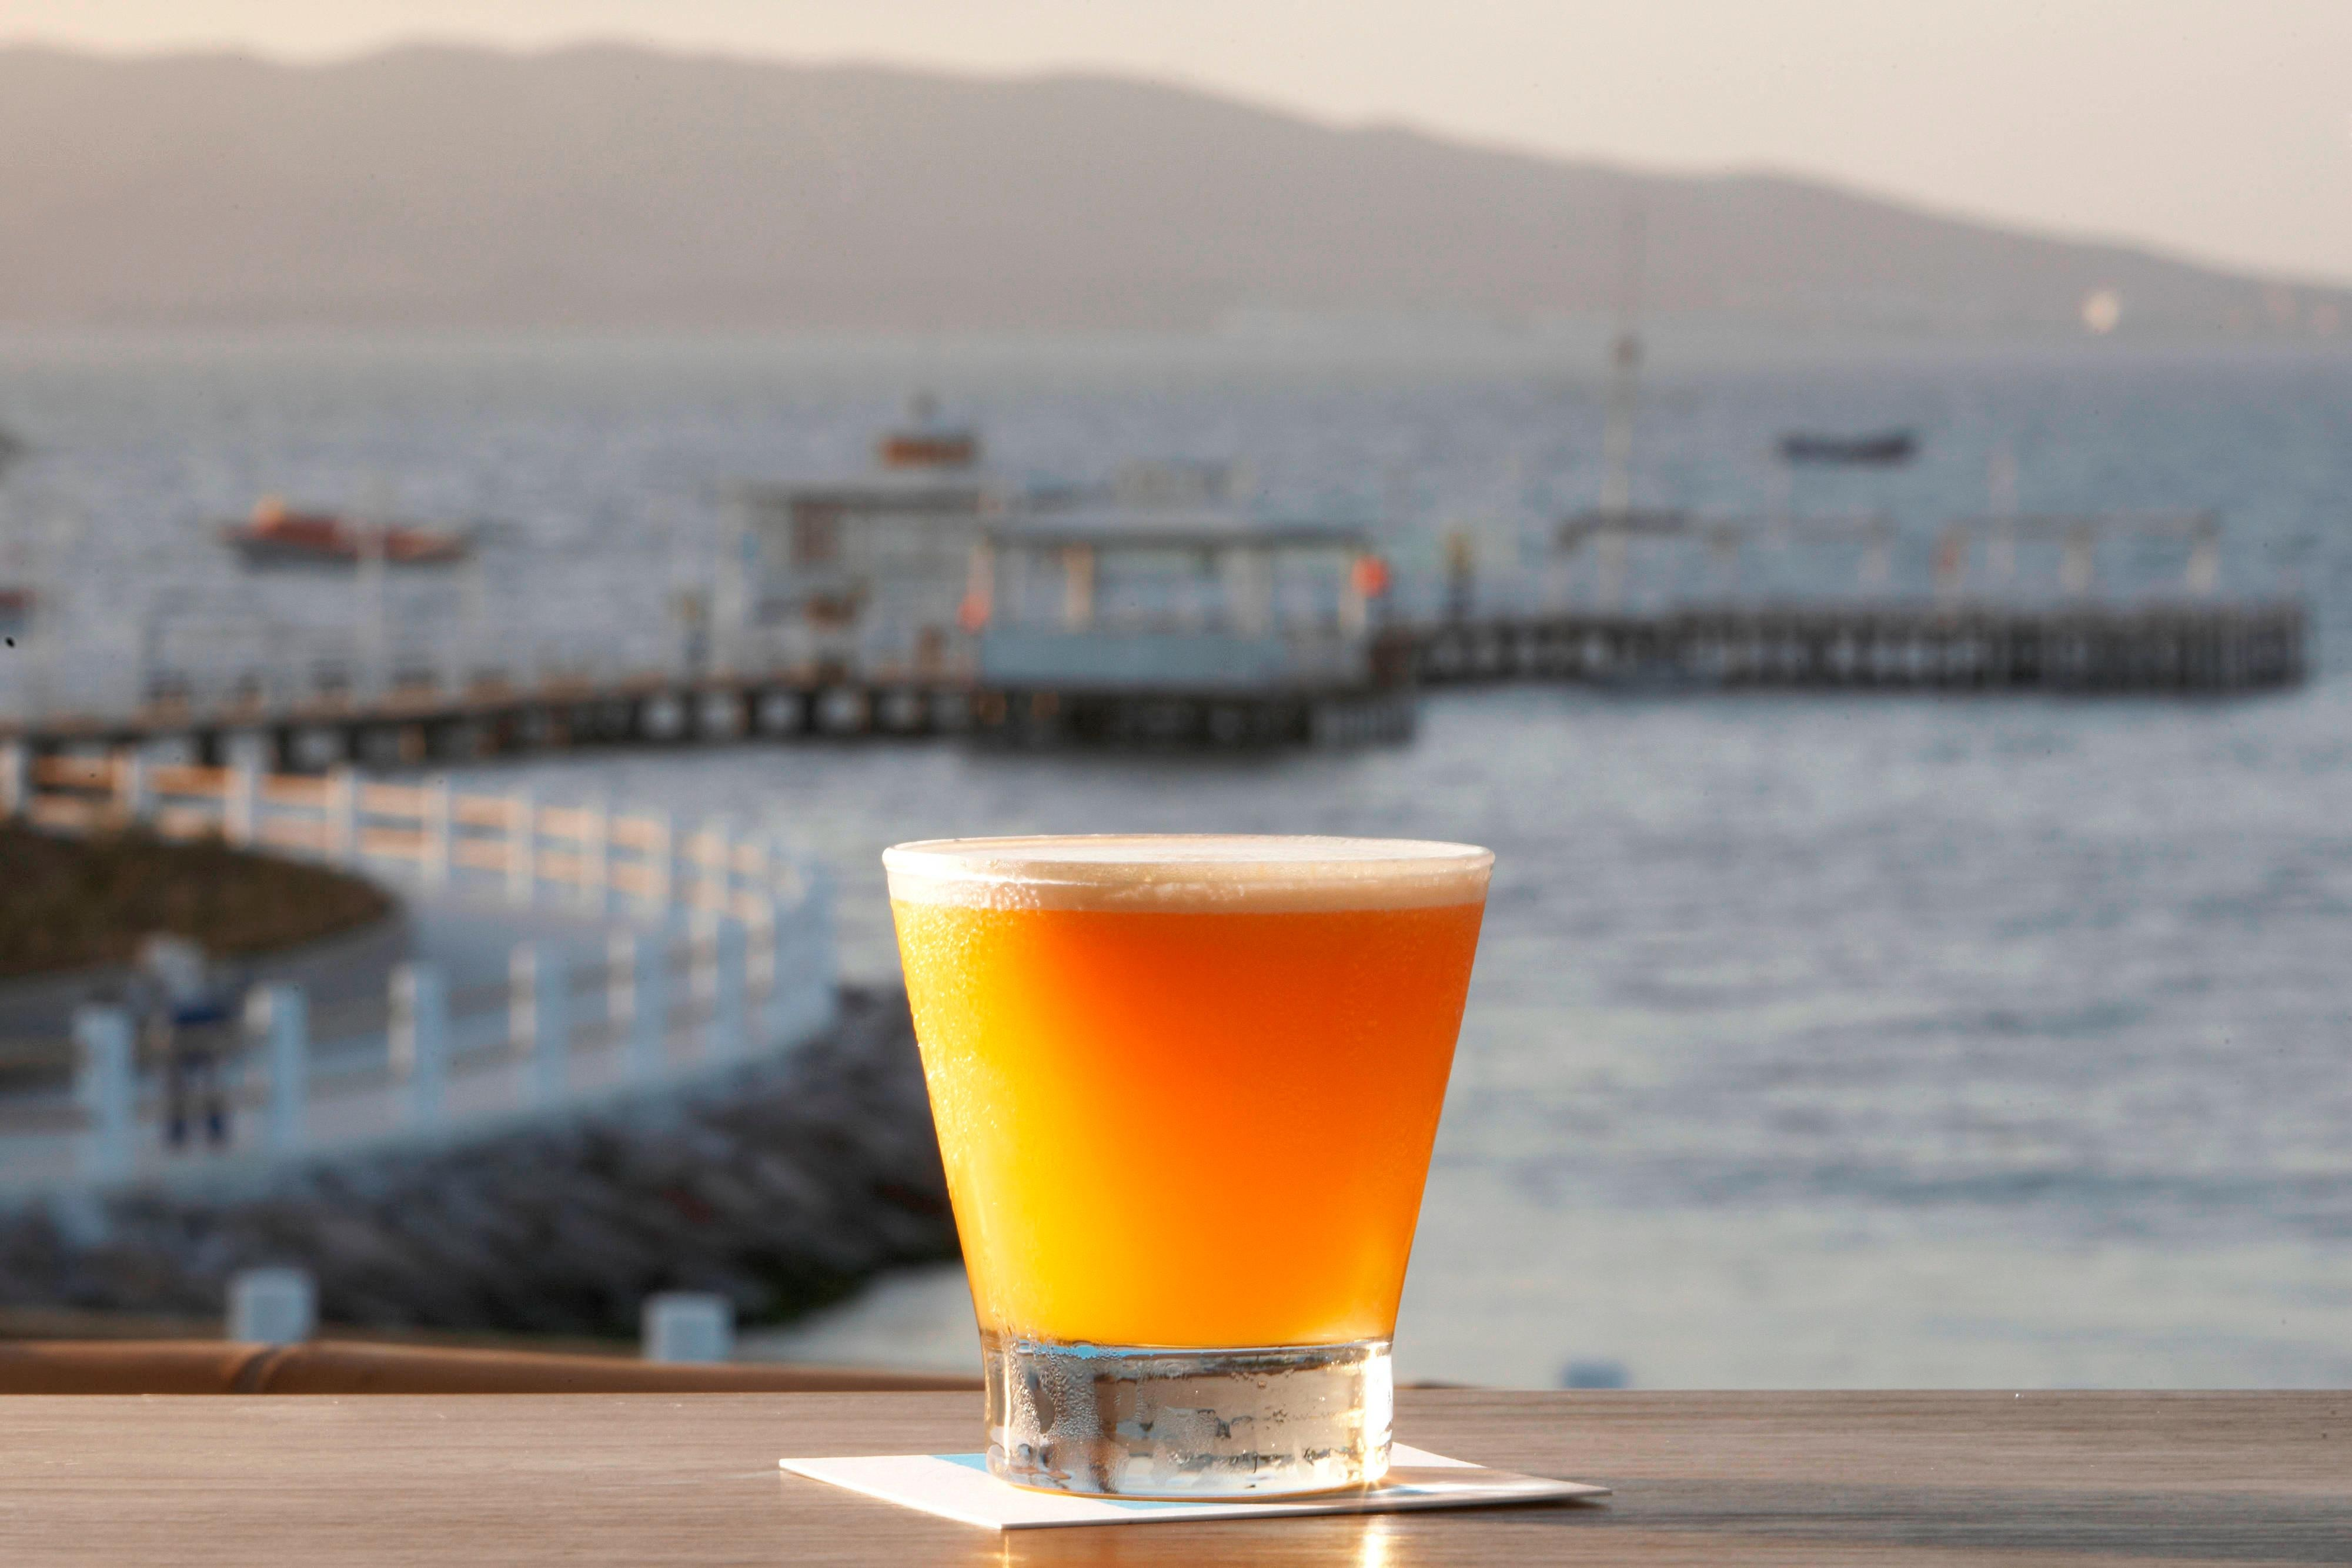 Paracas Sour with Ocean Background